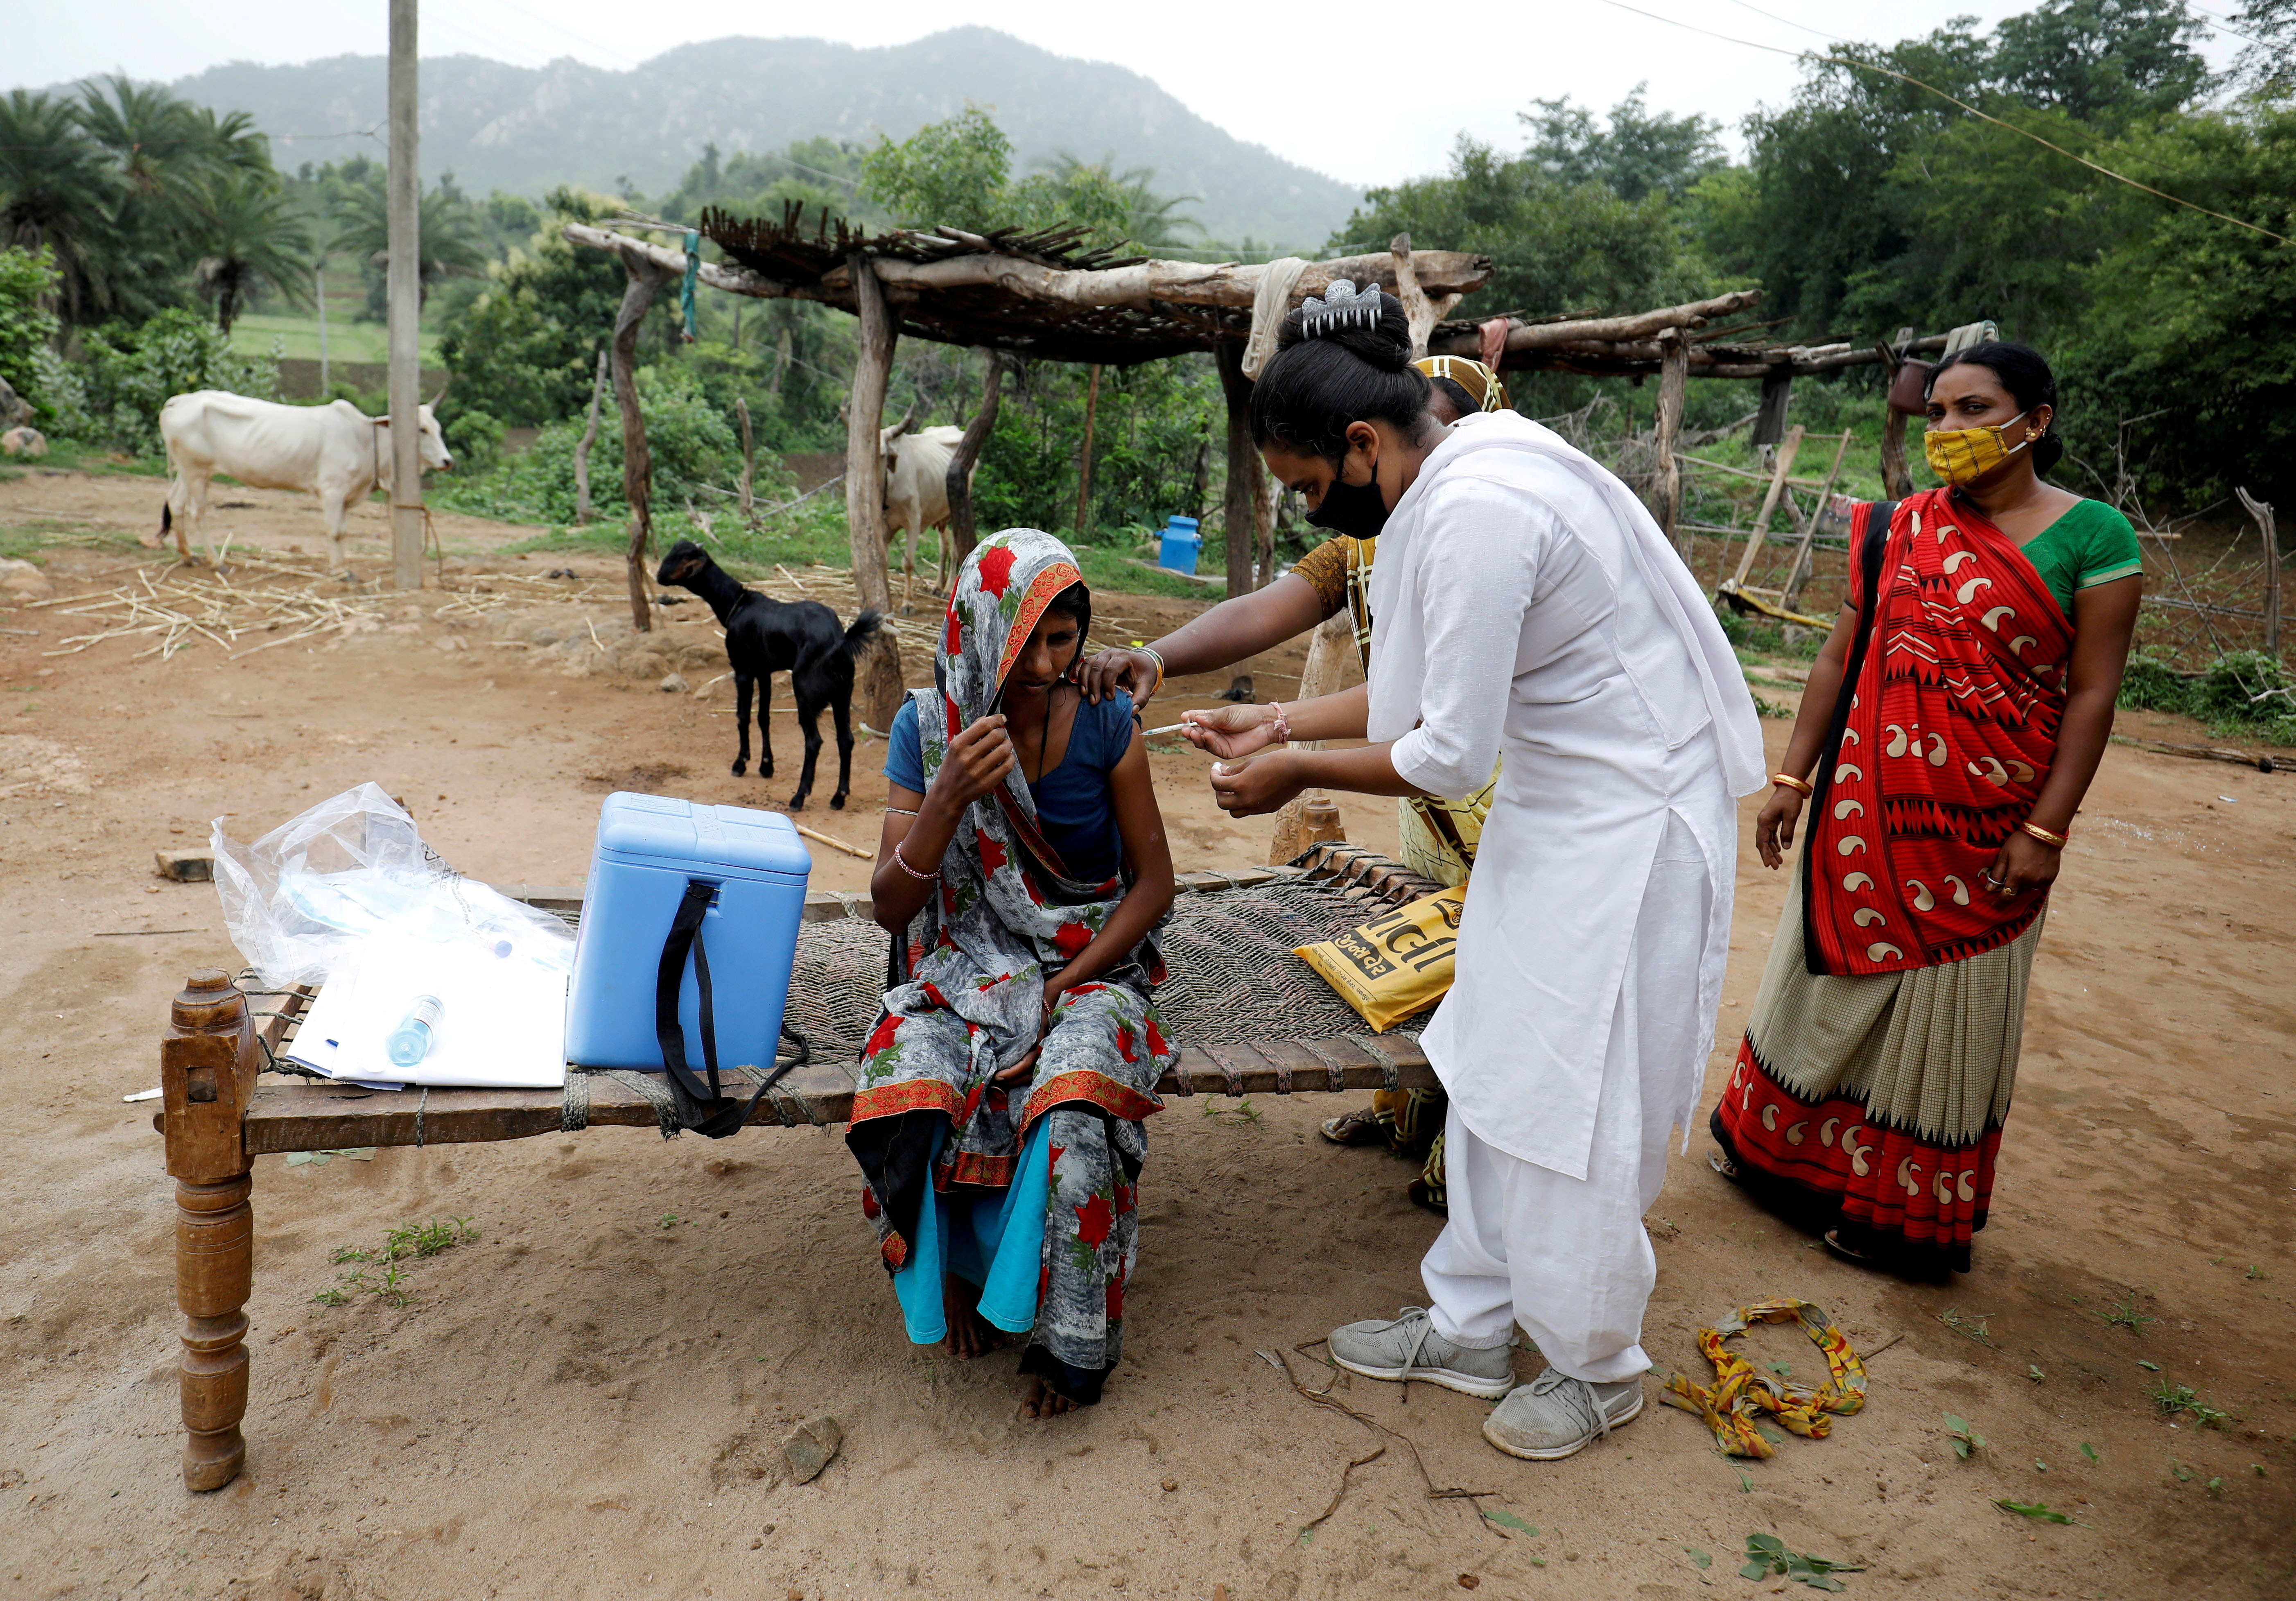 Healthcare worker Jankhana Prajapati gives a dose of the domestically manufactured COVISHIELD vaccine to villager Amiyaben Dabhi during a door-to-door vaccination drive in Banaskantha district in the western state of Gujarat, India, July 23, 2021. REUTERS/Amit Dave